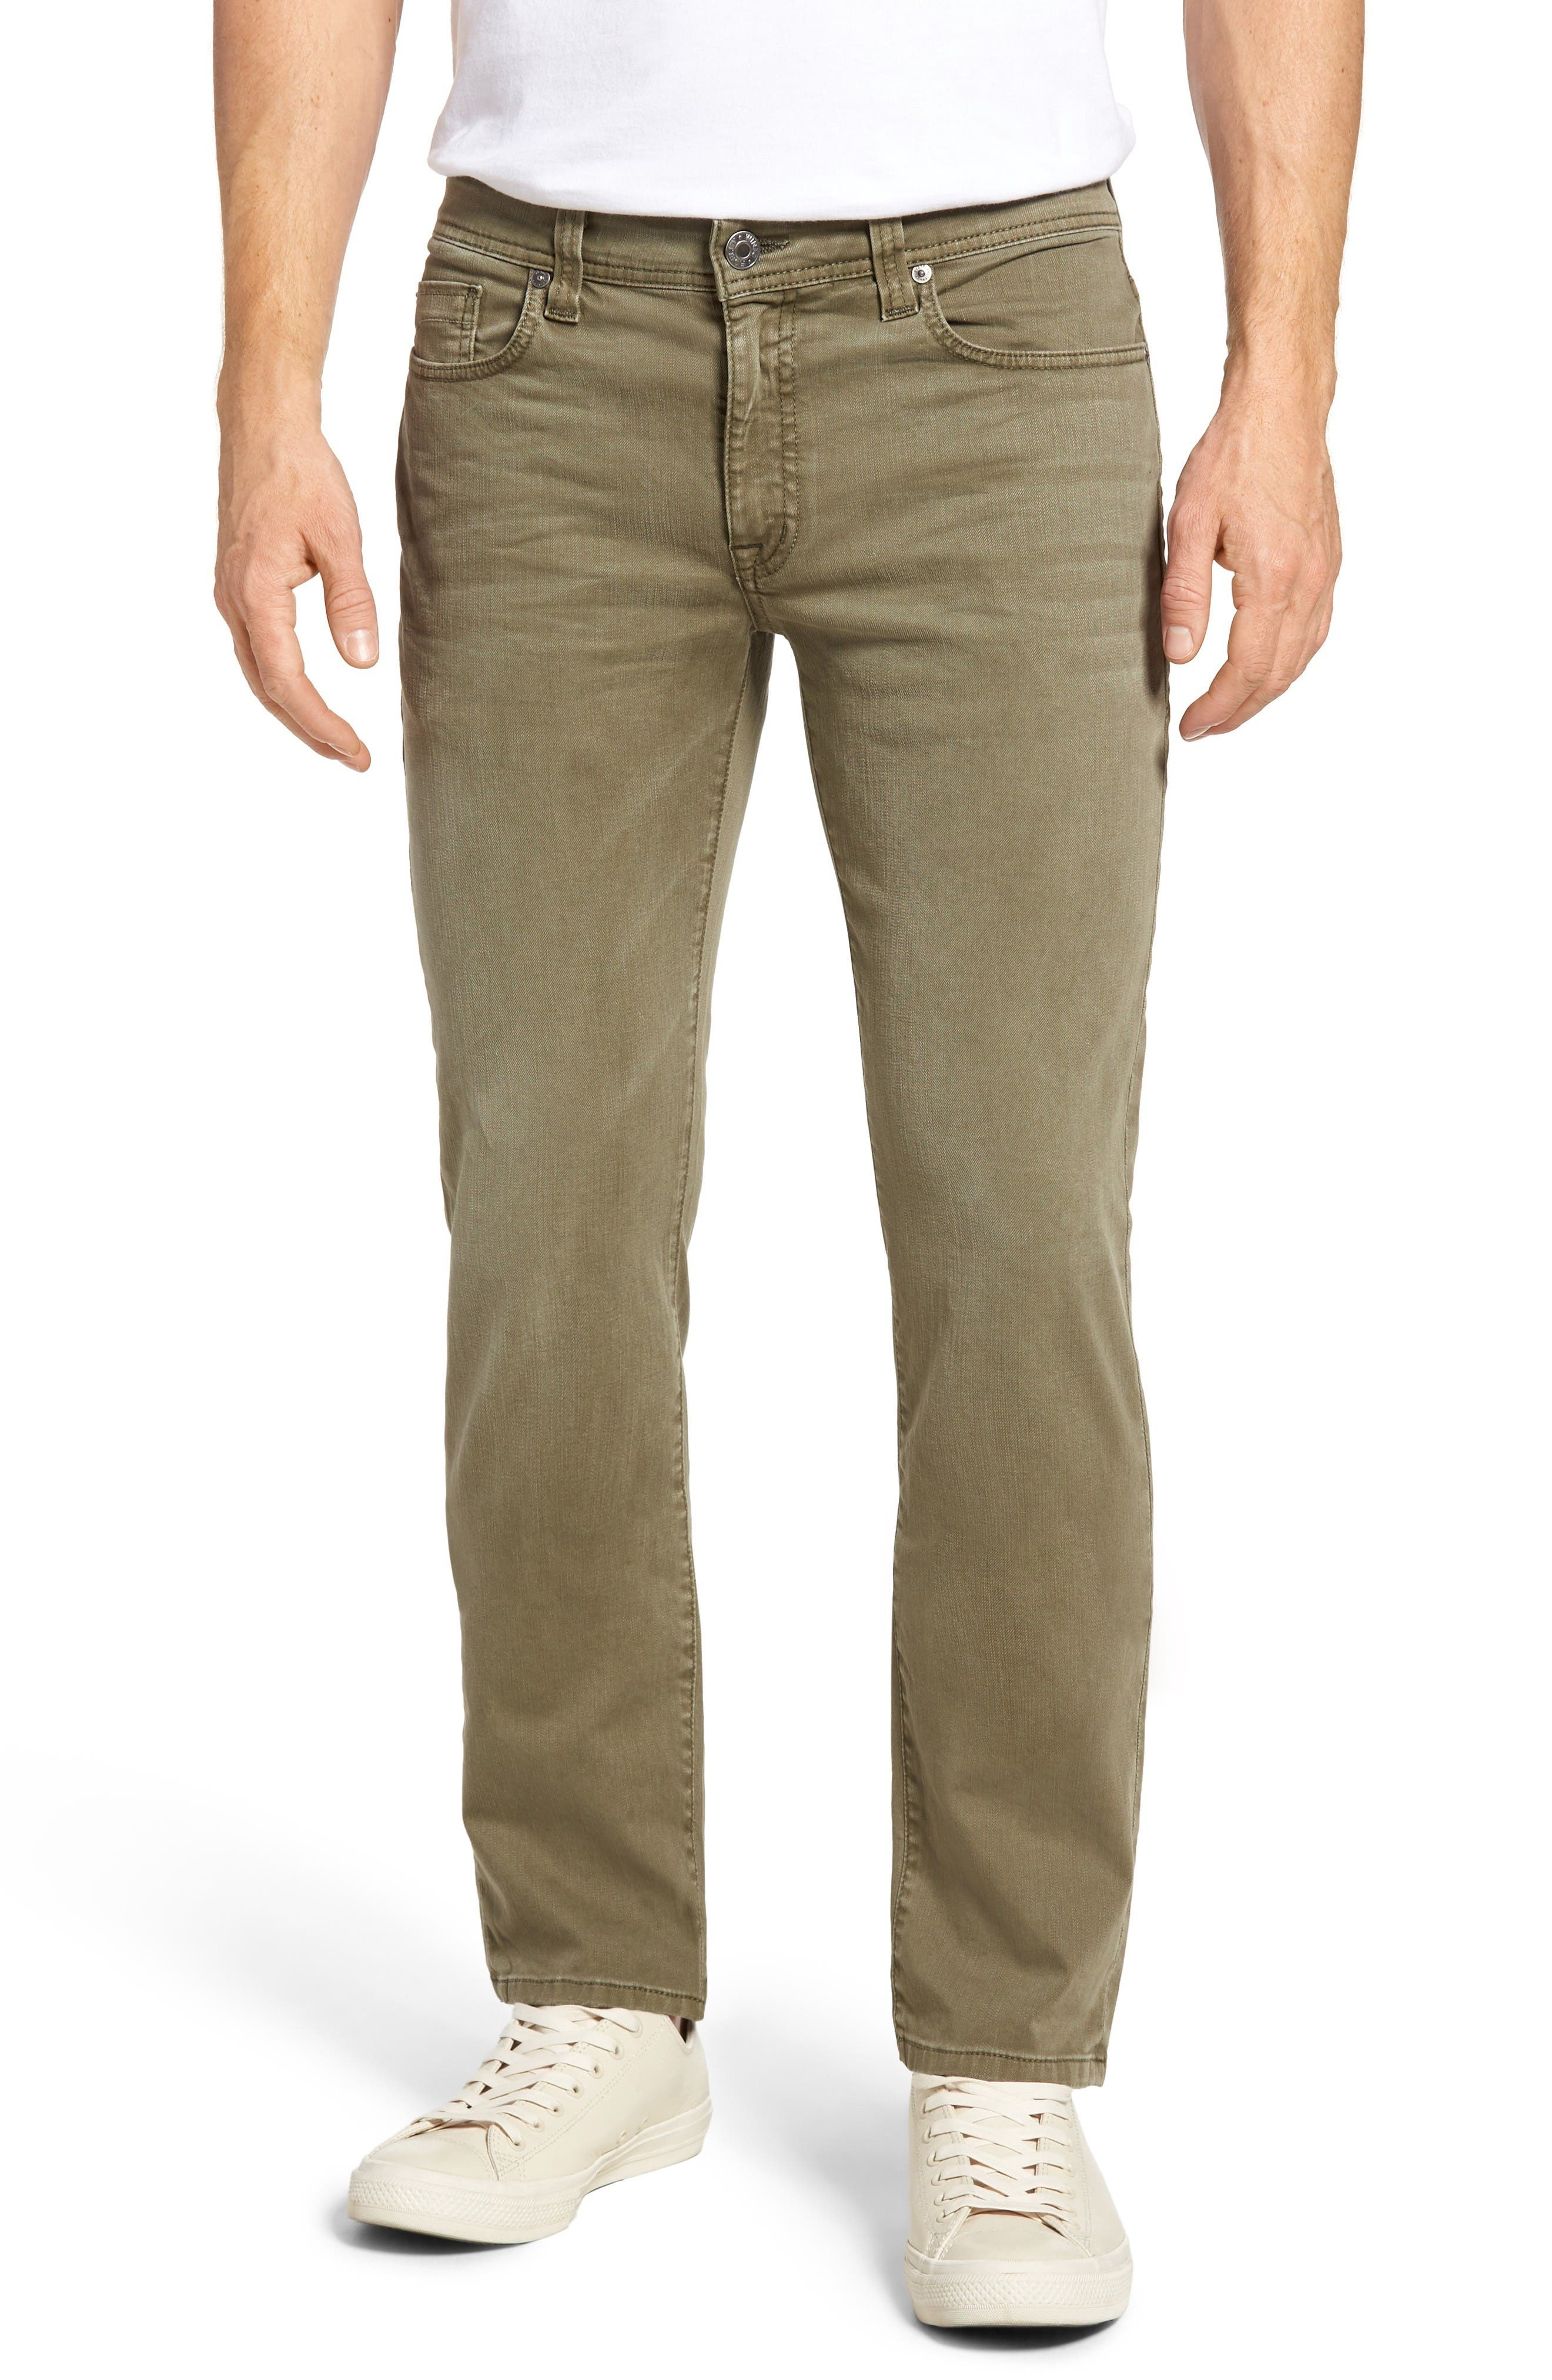 Fidelity Denim Jimmy Slim Straight Leg Jeans (Artichoke)